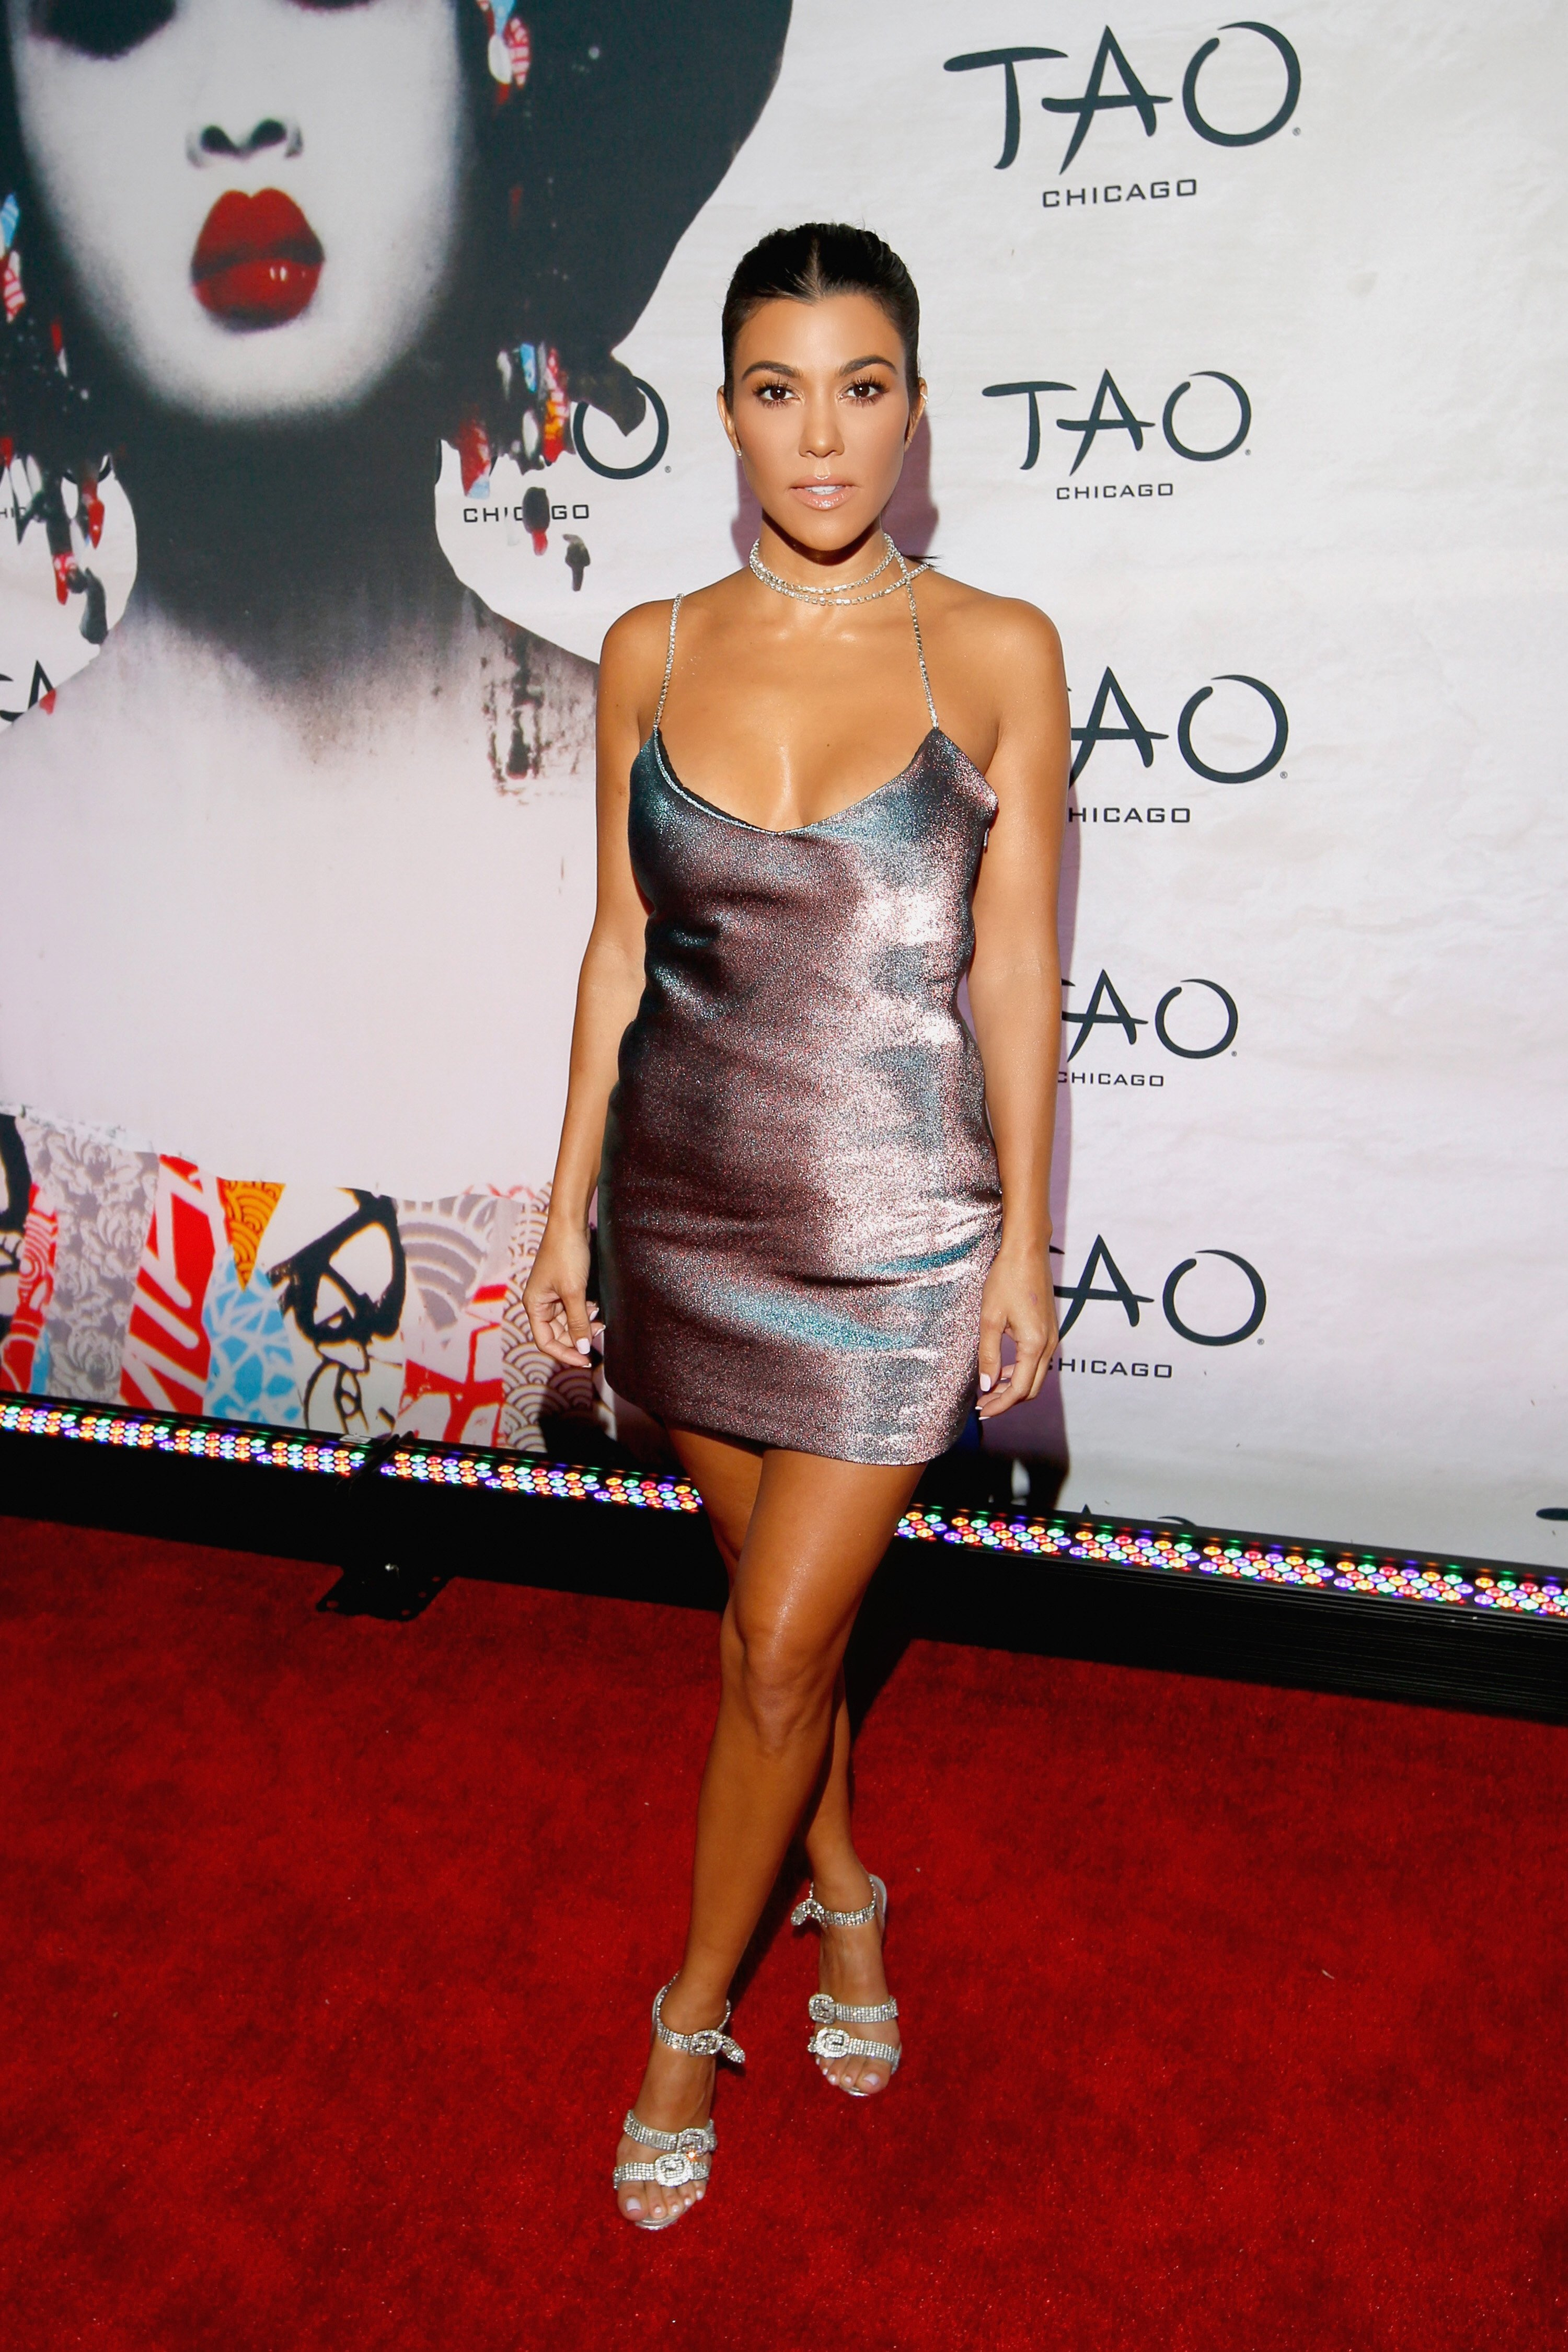 Kourtney Kardashian attends the TAO Chicago Grand Opening Celebration at TAO Chicago on September 15, 2018, in Chicago, Illinois. | Source: Getty Images.